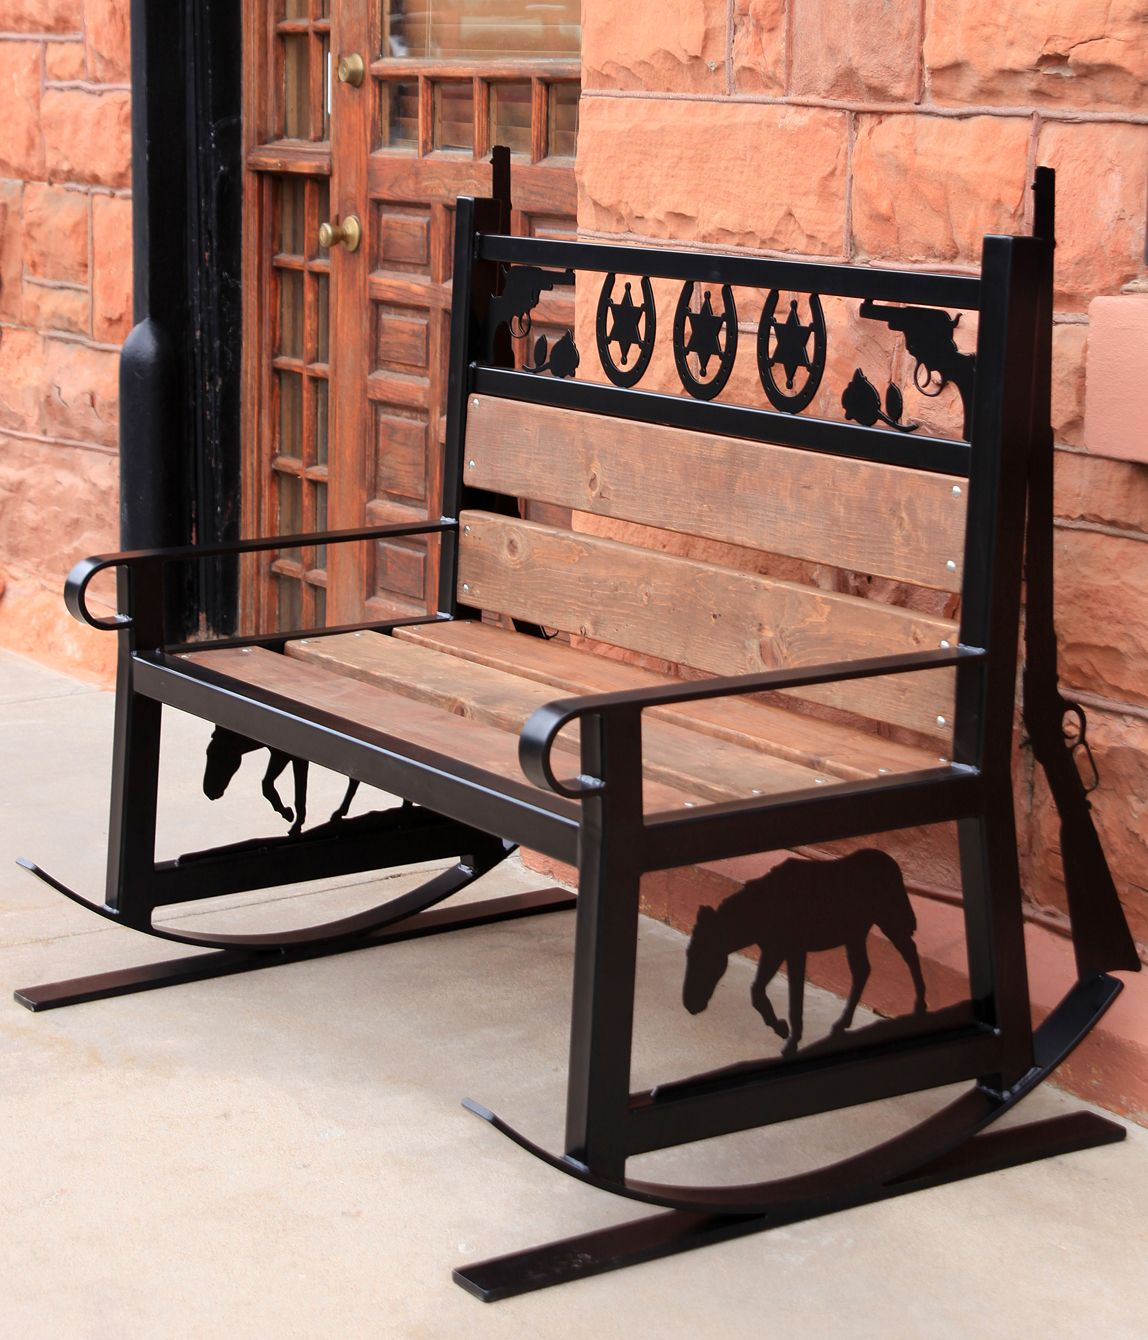 western style metal rocking bench you can make your own metal bench designs with a plasmacam. Black Bedroom Furniture Sets. Home Design Ideas